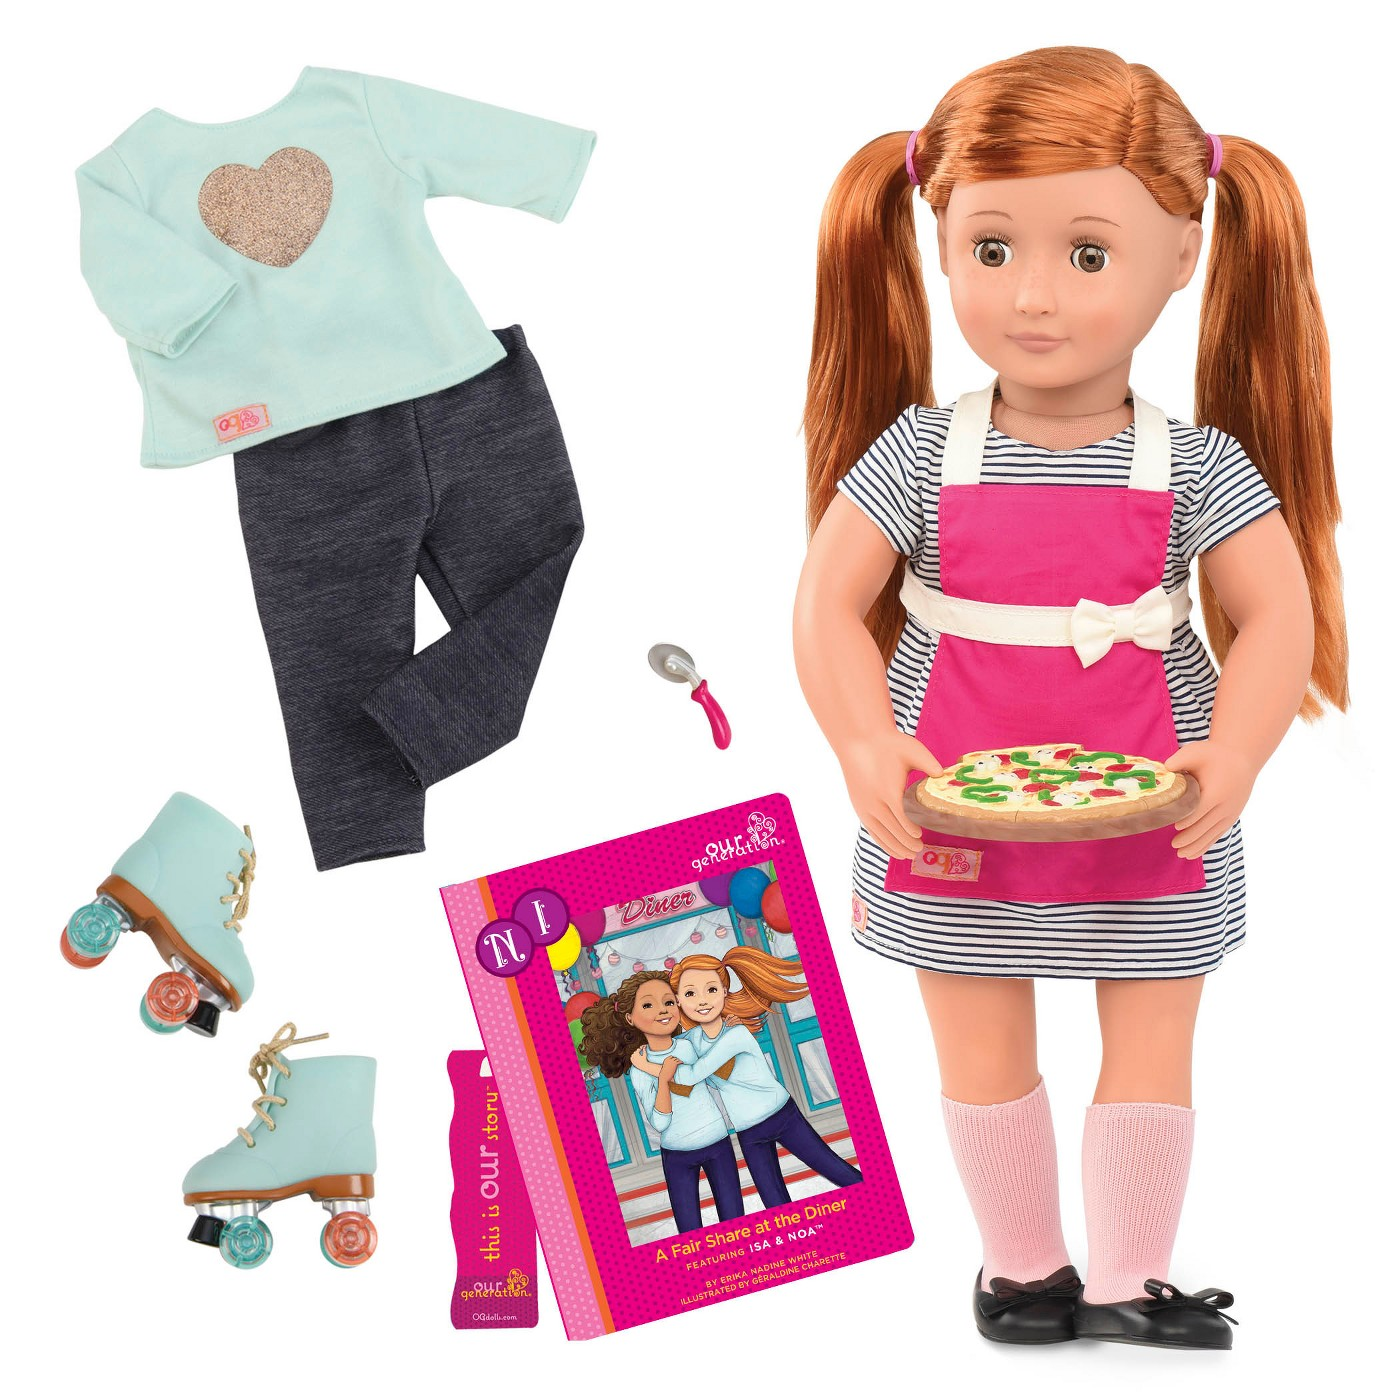 18 Inch Doll 45cm Our Generation Doll With Flexible Arms And Legs18 Inch Doll 45cm Our Generation Doll With Flexible Arms And Legs